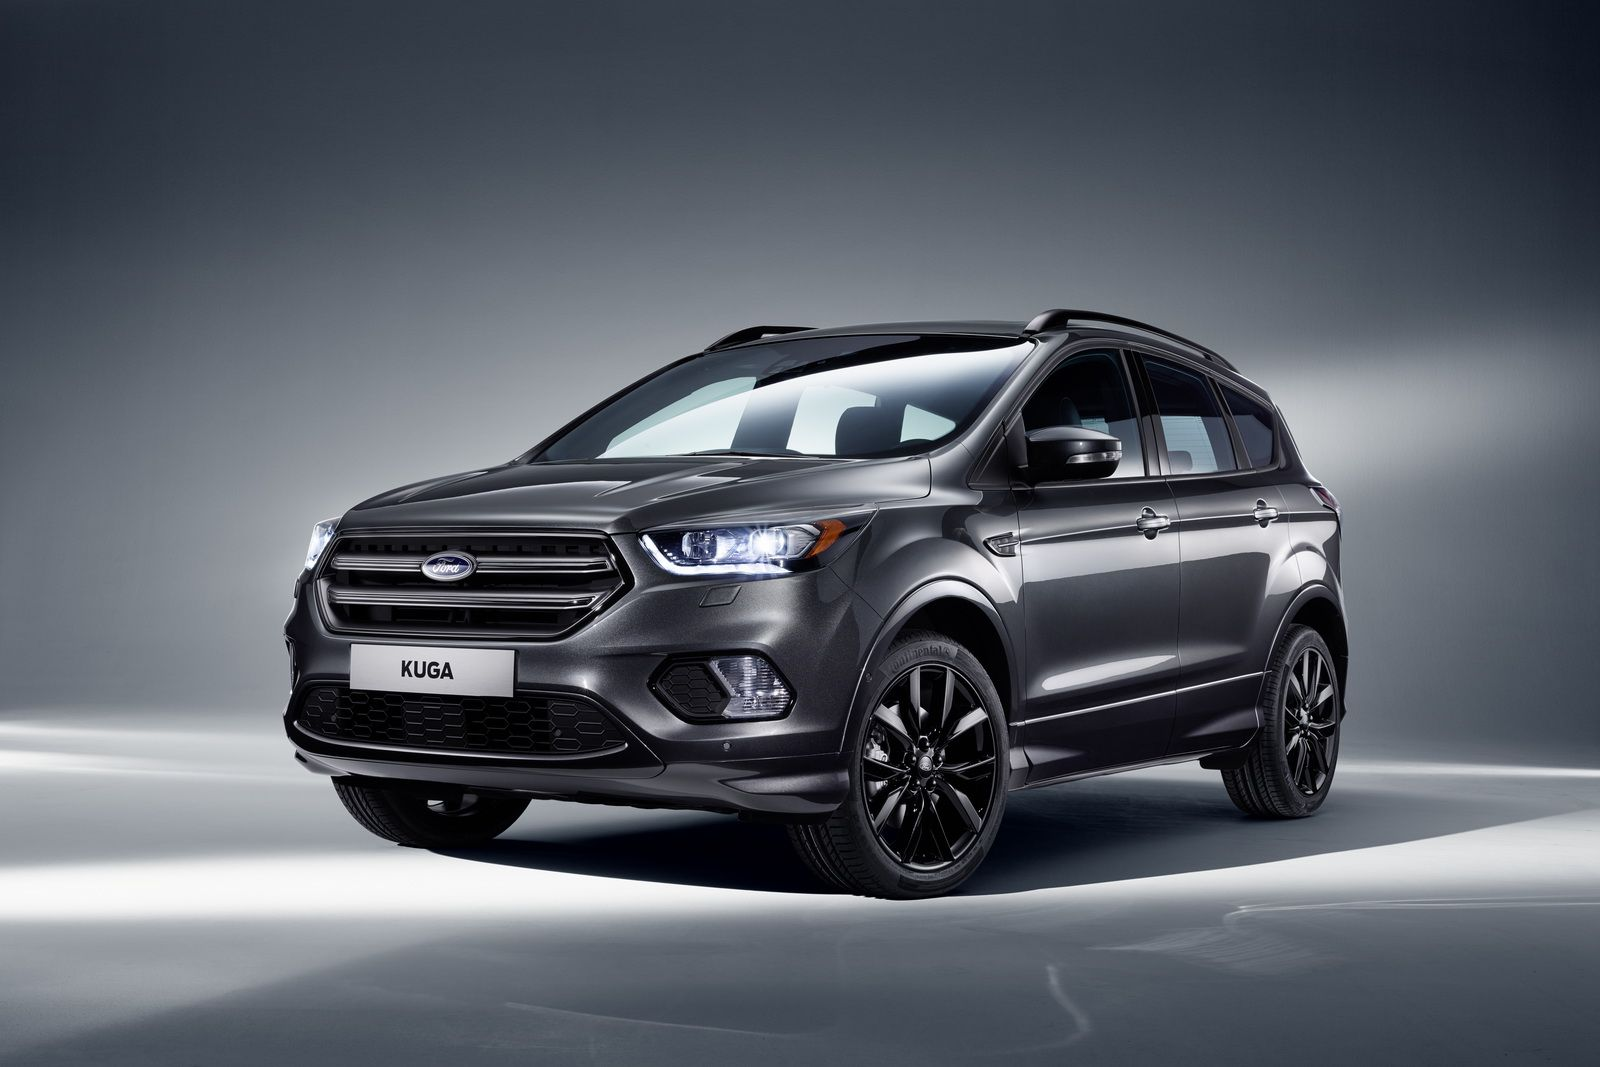 Updated 2017 Ford Kuga Suv Goes On Sale In Europe W Video Ford